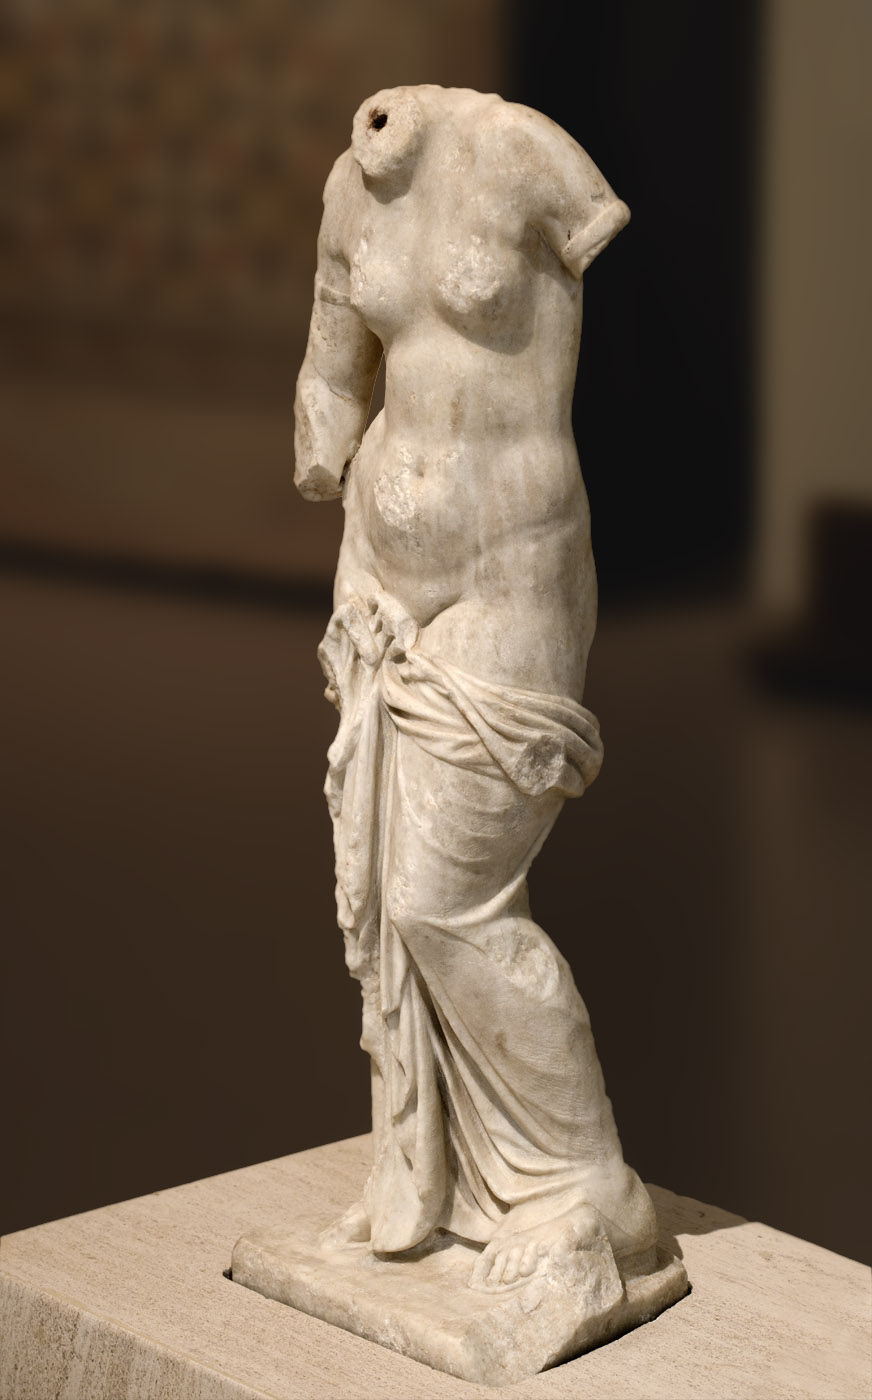 Small statue of Aphrodite (Venus). Roman copy of a Greek original. Marble. 1st—2nd cent. CE. Patras, New Archaeological Museum